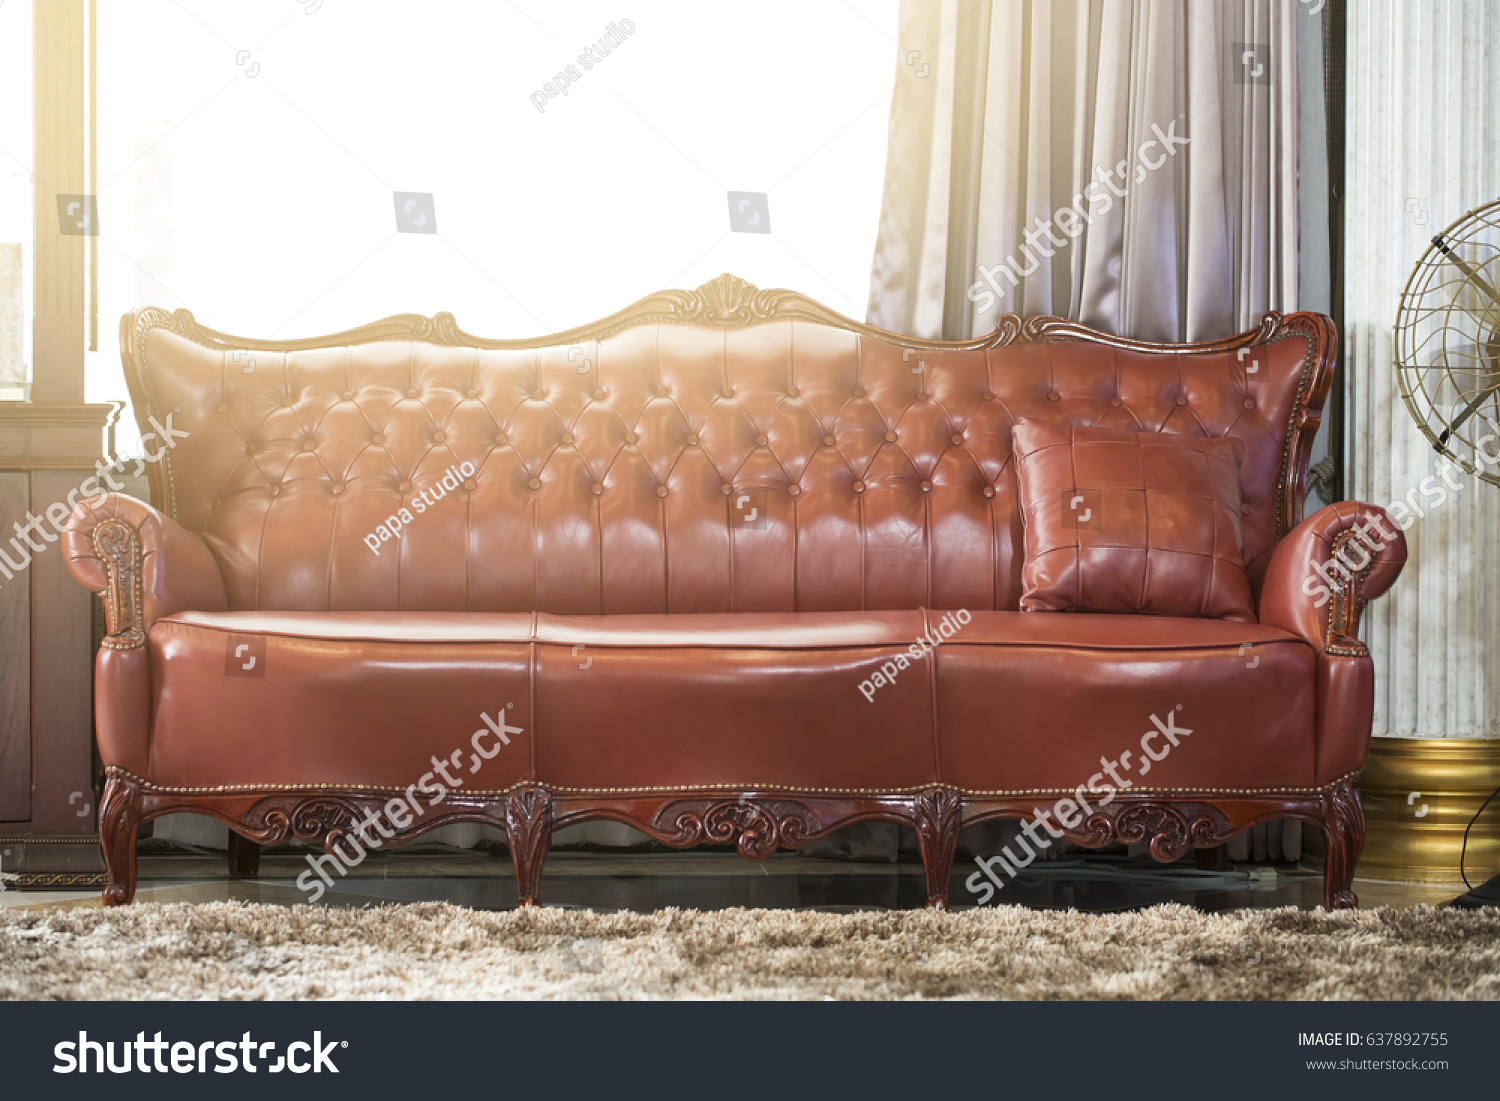 Leather Sofa Vintage Style Room Warm Stock Photo 637892755  ~ Leather Sofa Vintage Style